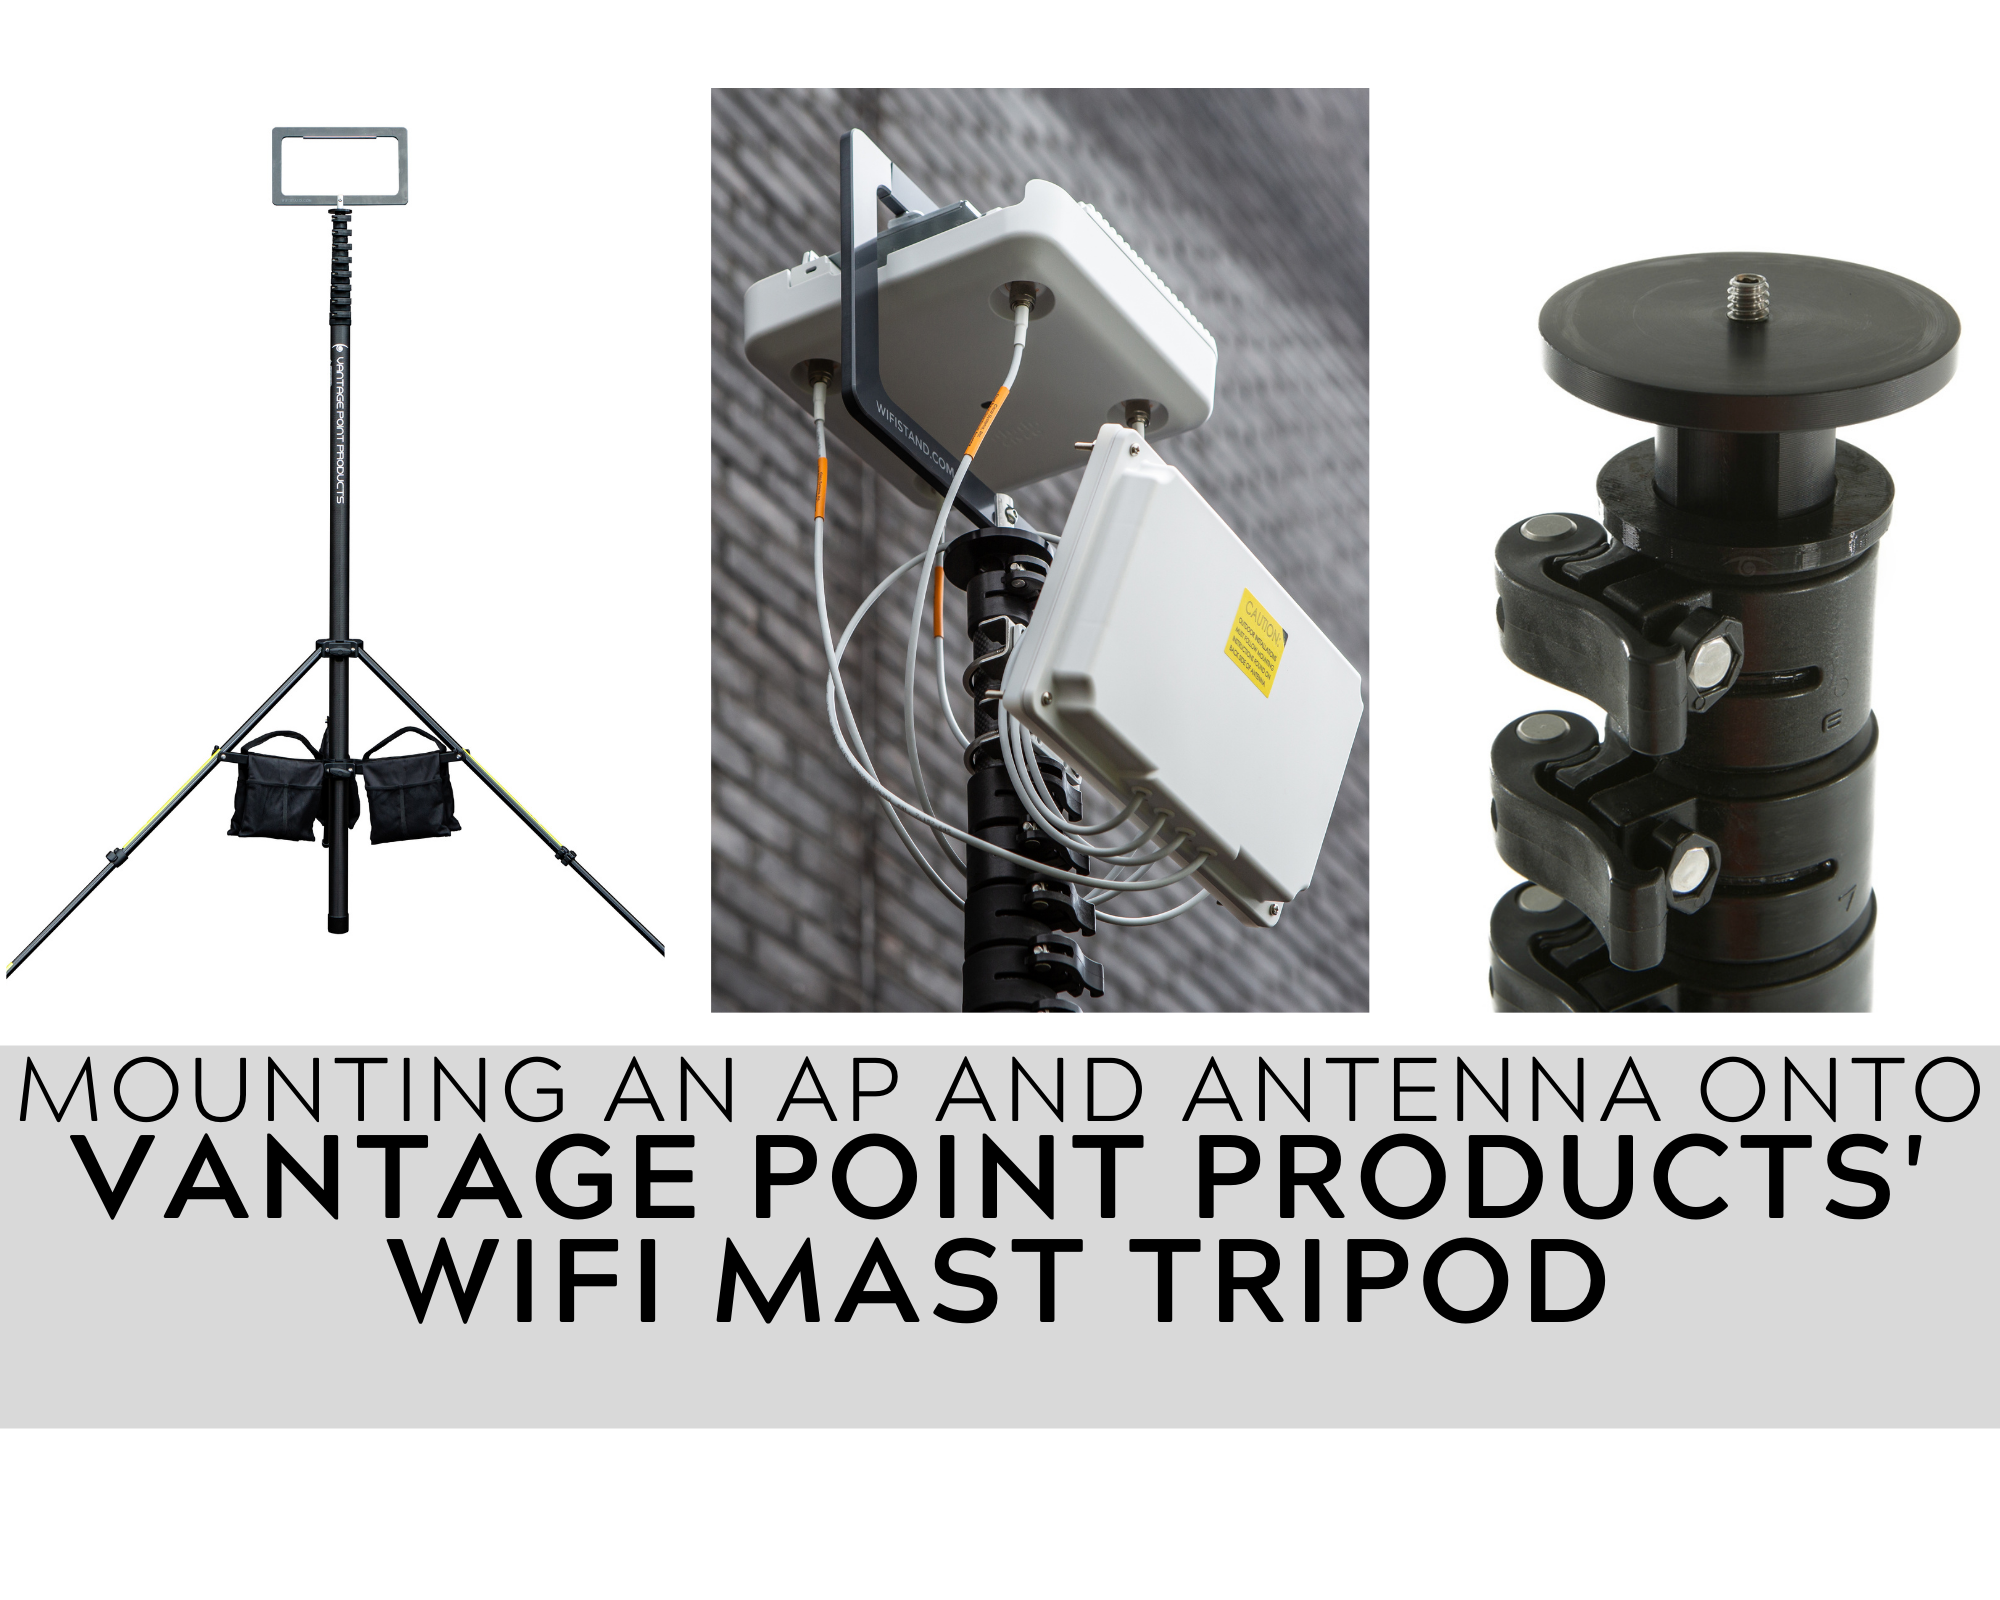 How to Mount an AP & Antenna on a WiFiStand for Warehouse WiFi Surveys